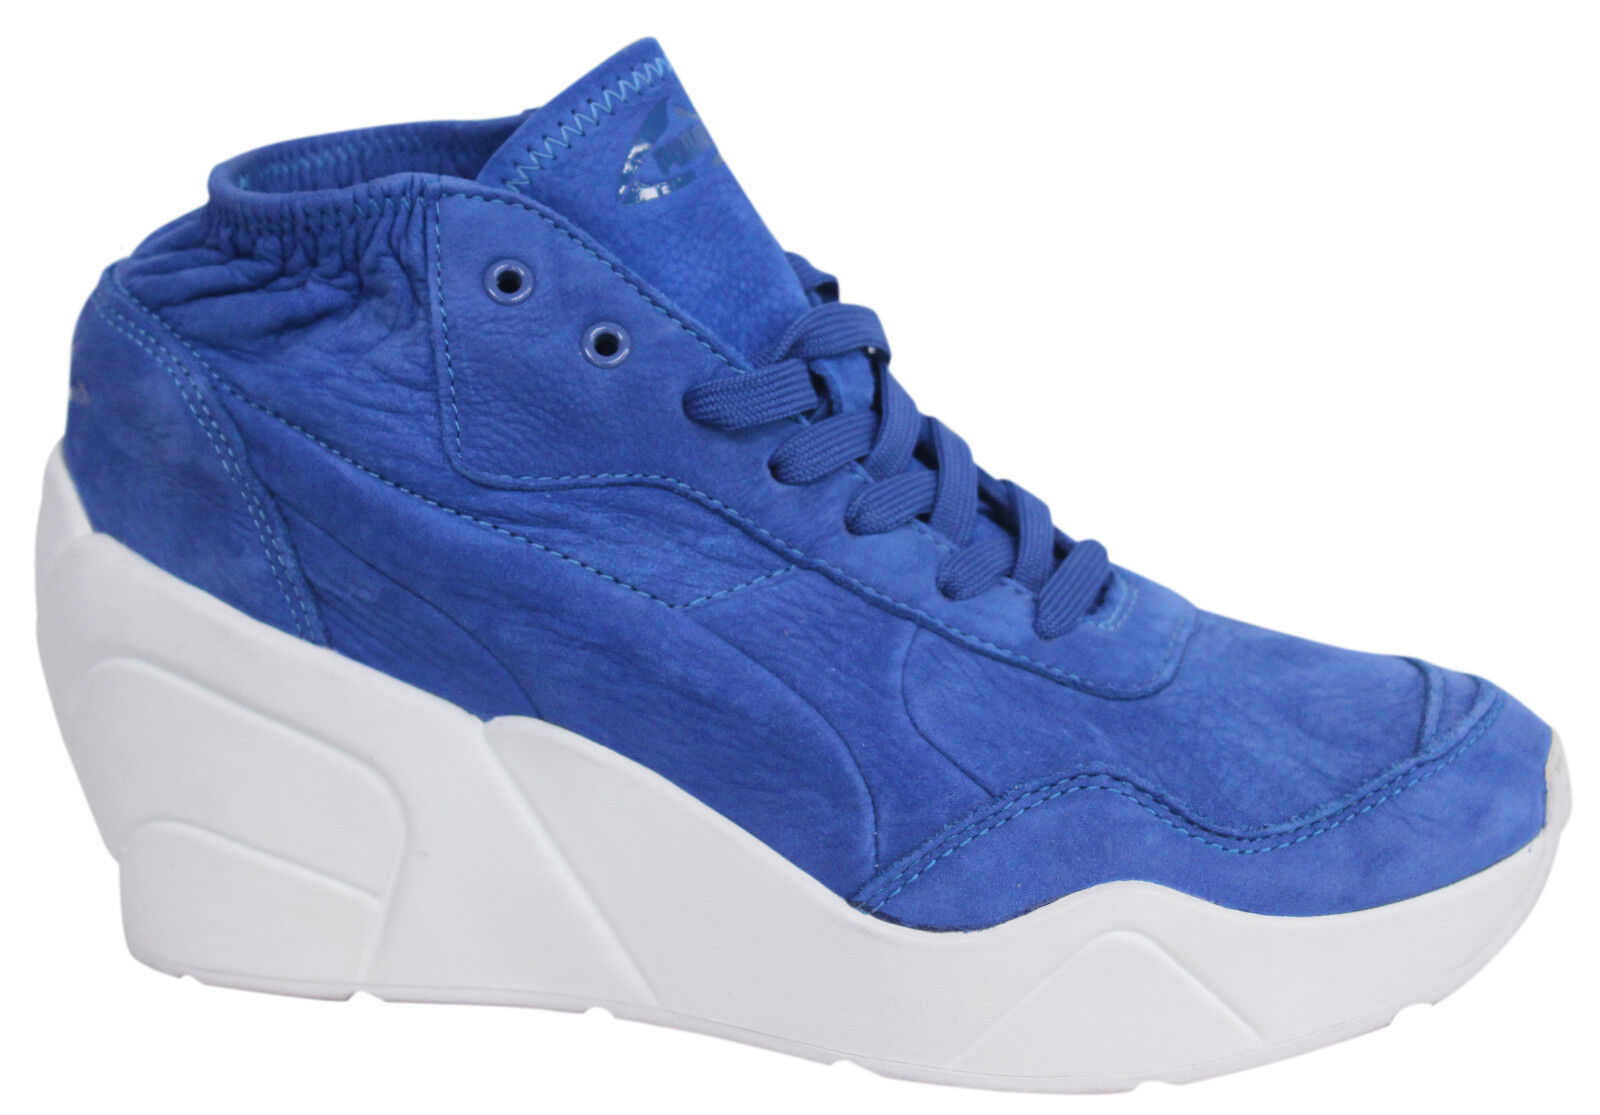 Puma mujer Lace Lace Lace Up Trinomic Wedge Leather Trainers zapatos 356378 02 P5  envío gratis